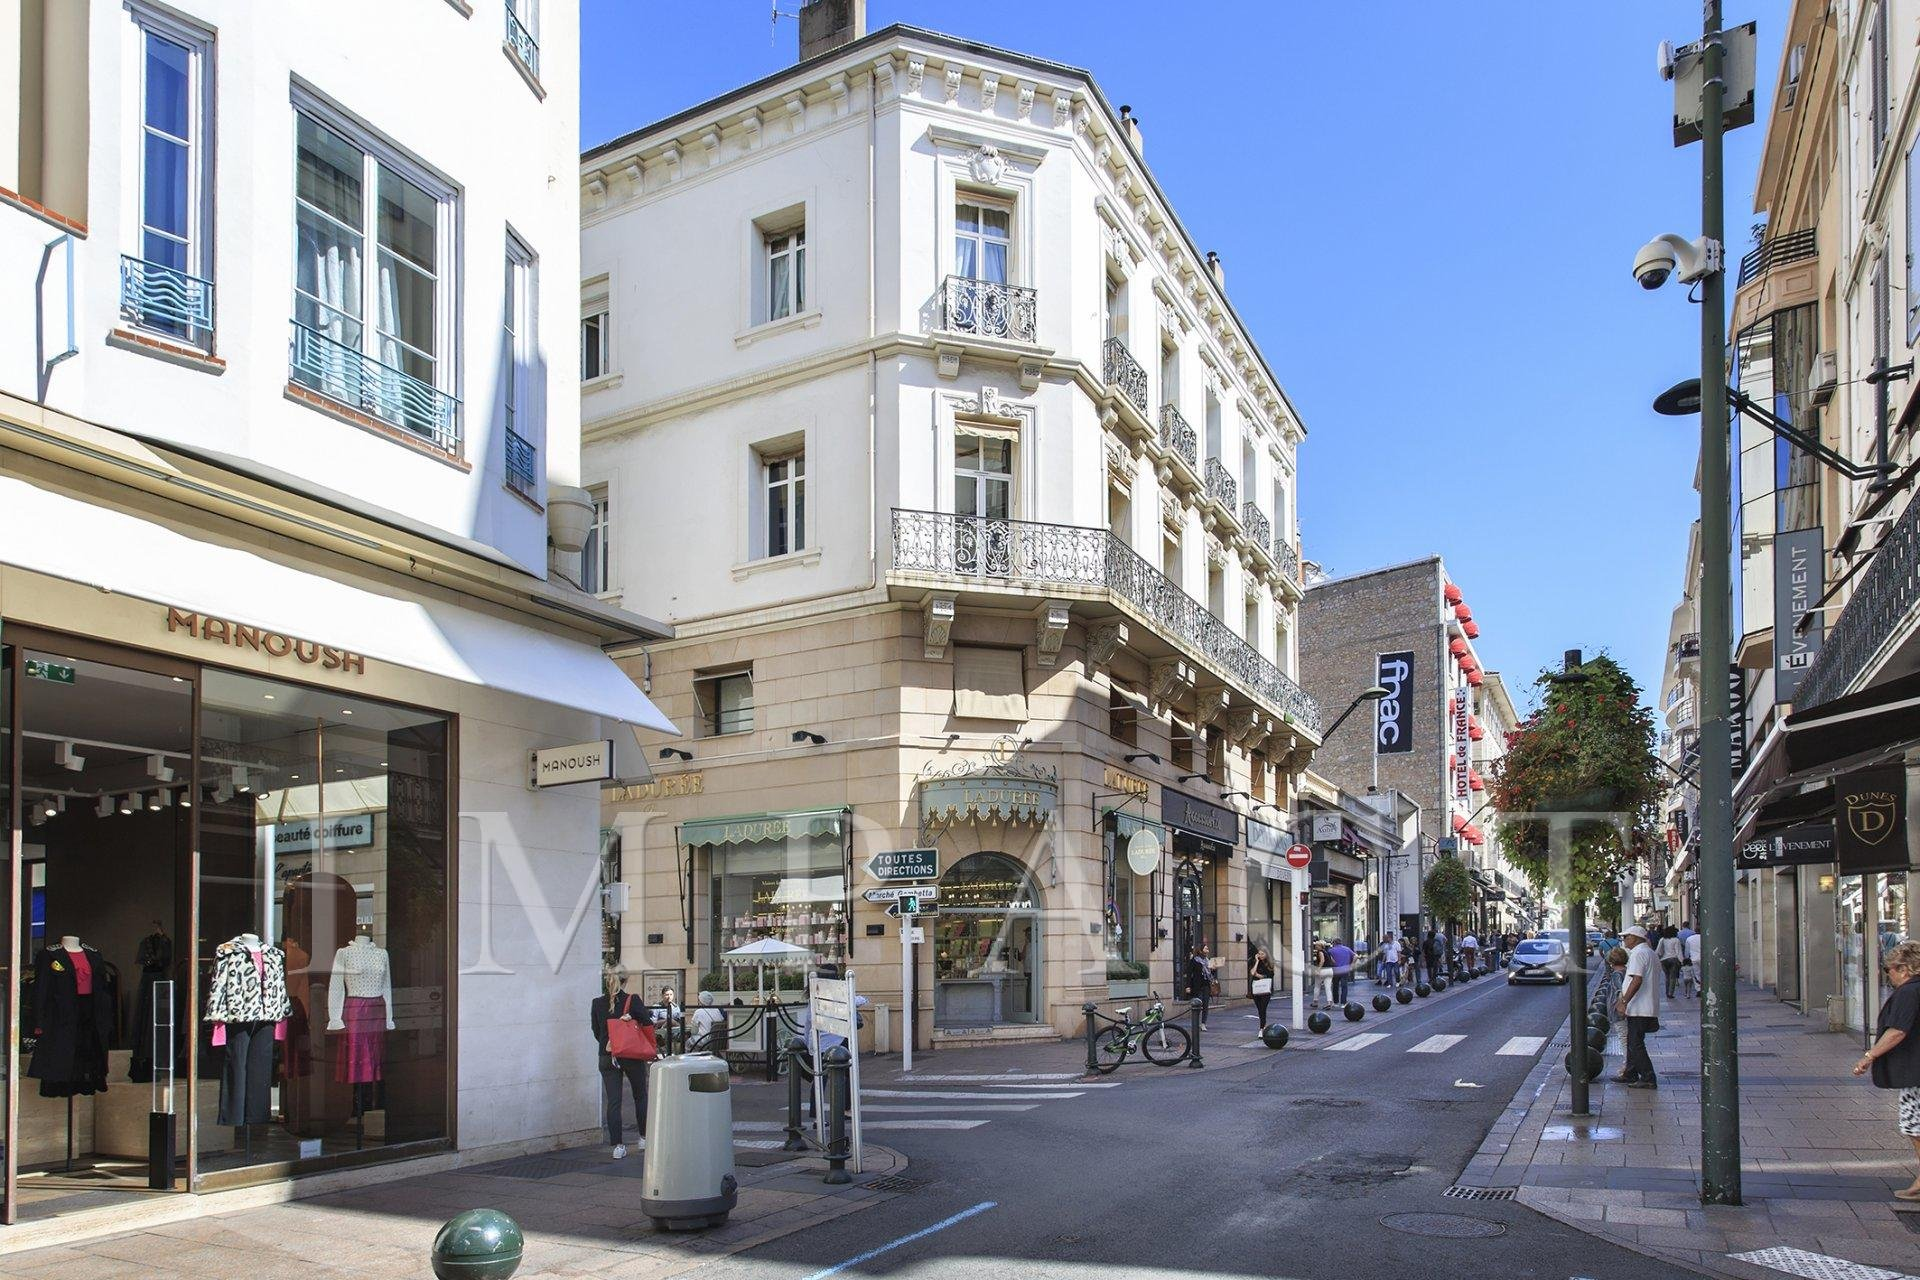 Apartment to rent, city center of Cannes